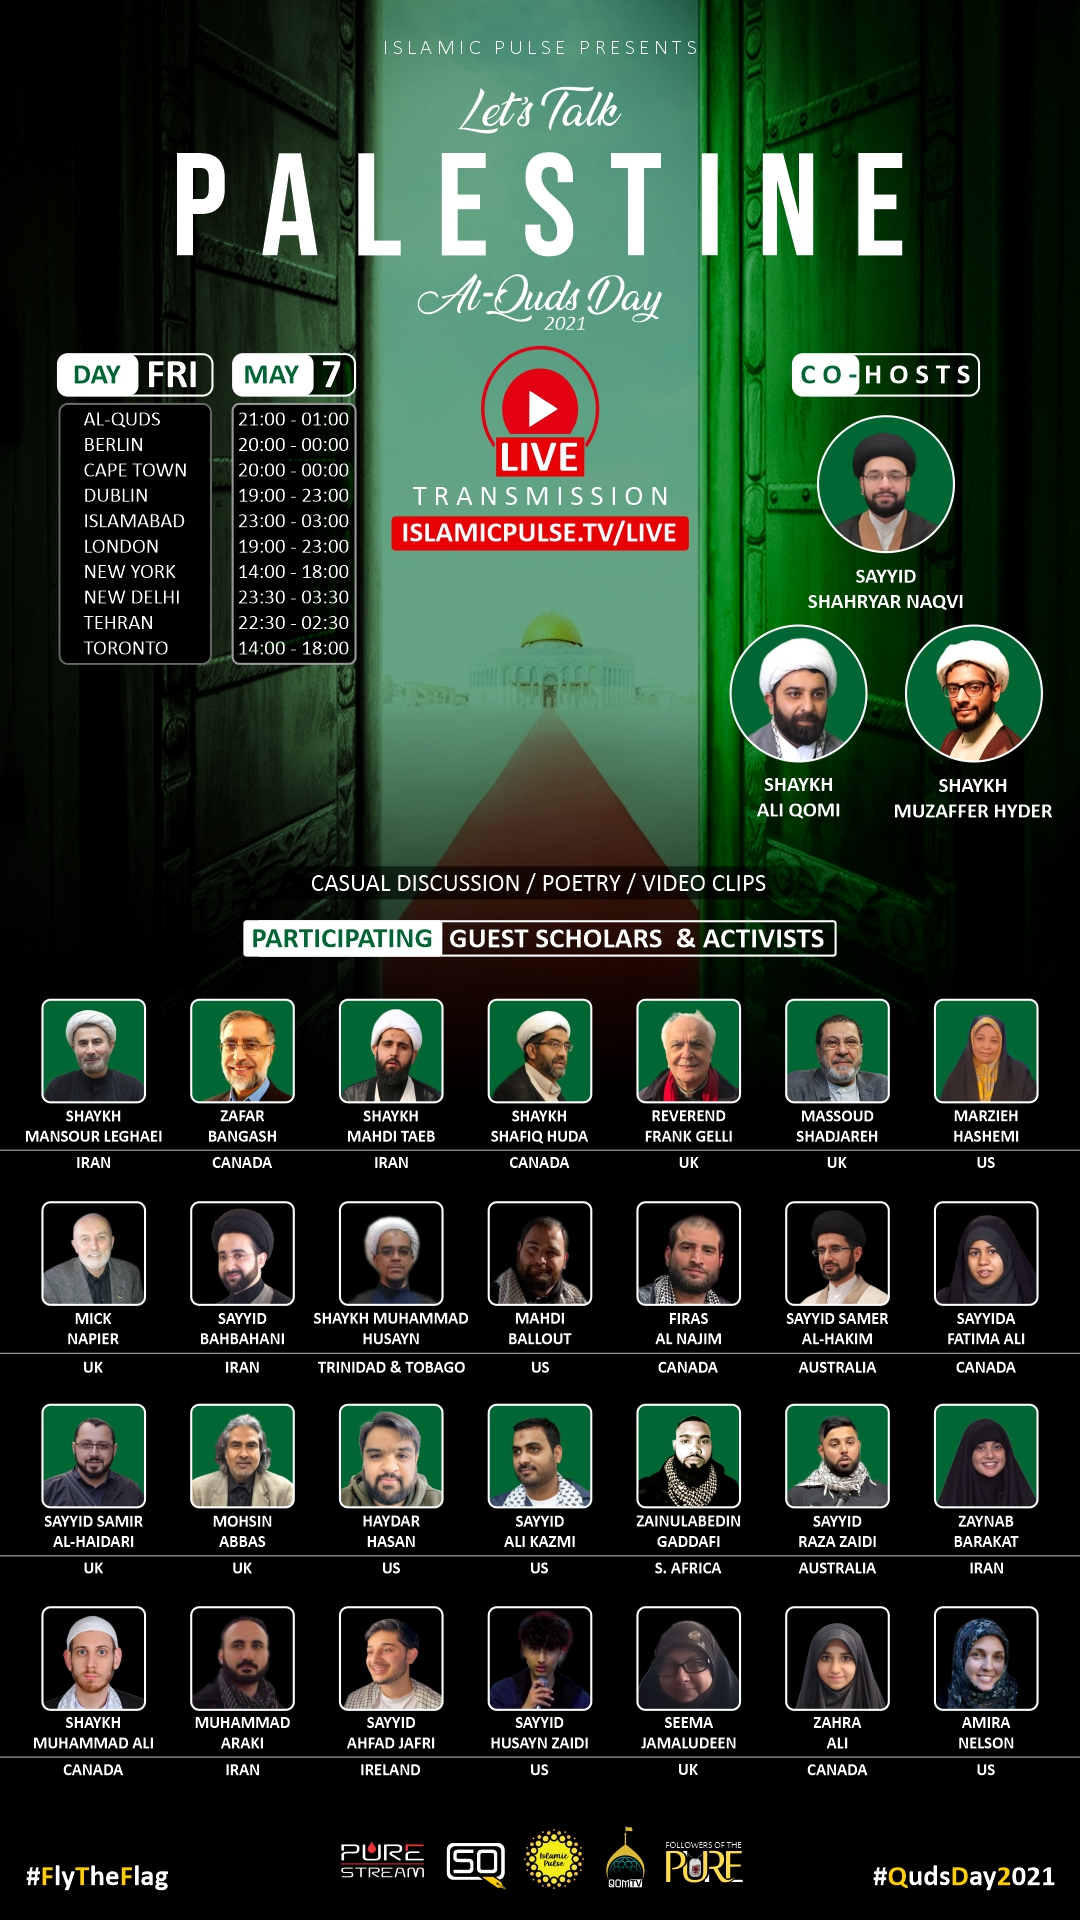 A poster of the Quds Day 2021 event with speakers names and photos